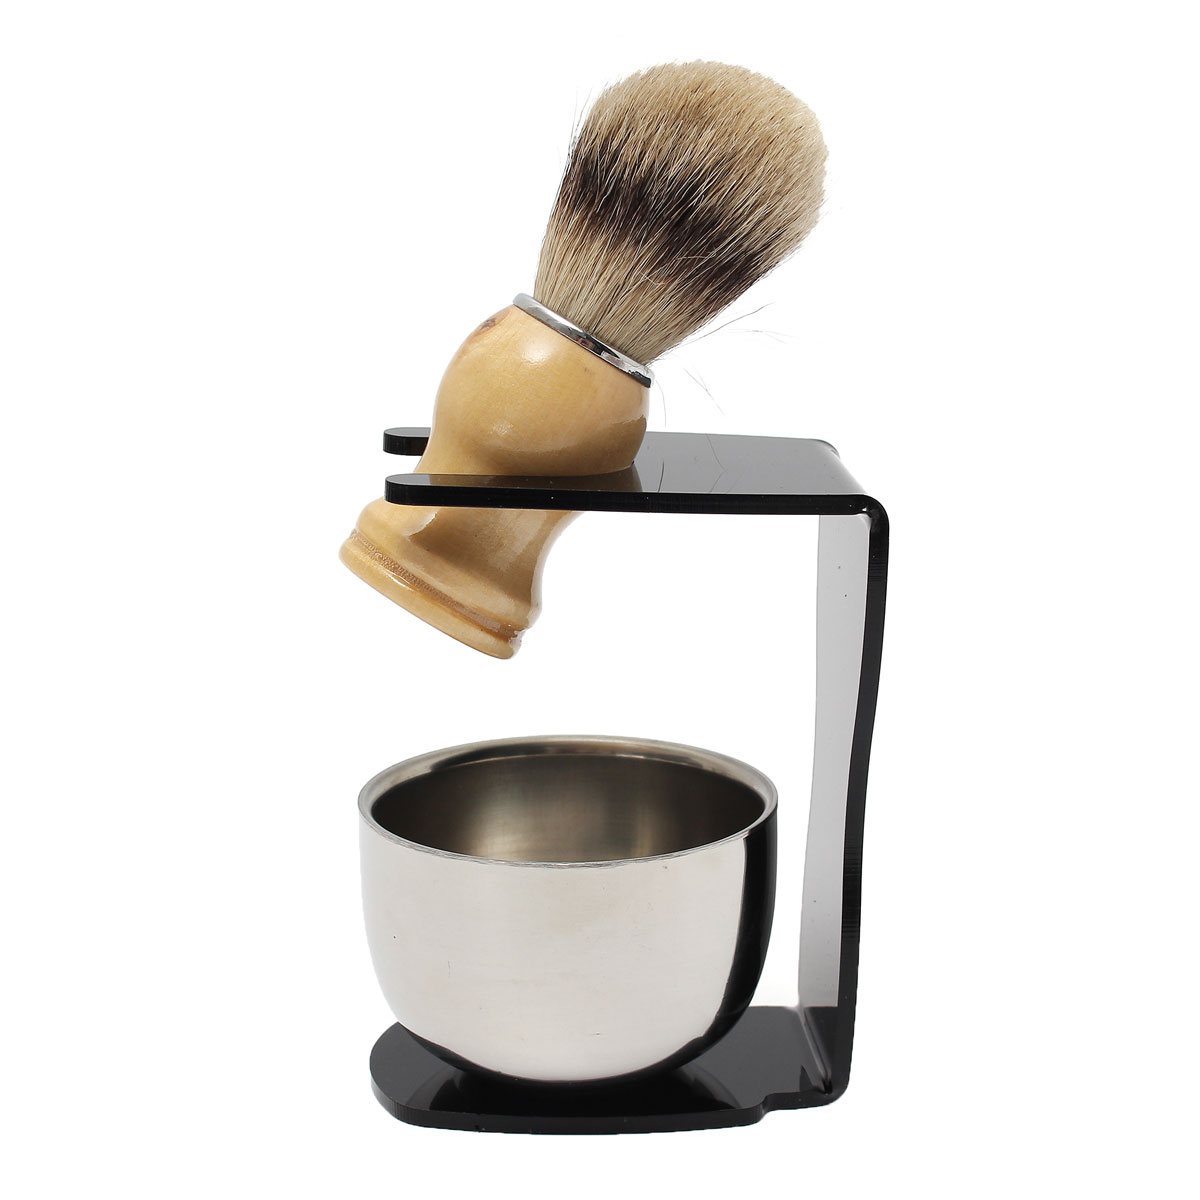 3 in 1 Men's Shaving Set Drip Brush Stand + Badger Hair Brush + Stainless Steel Bowl Mug